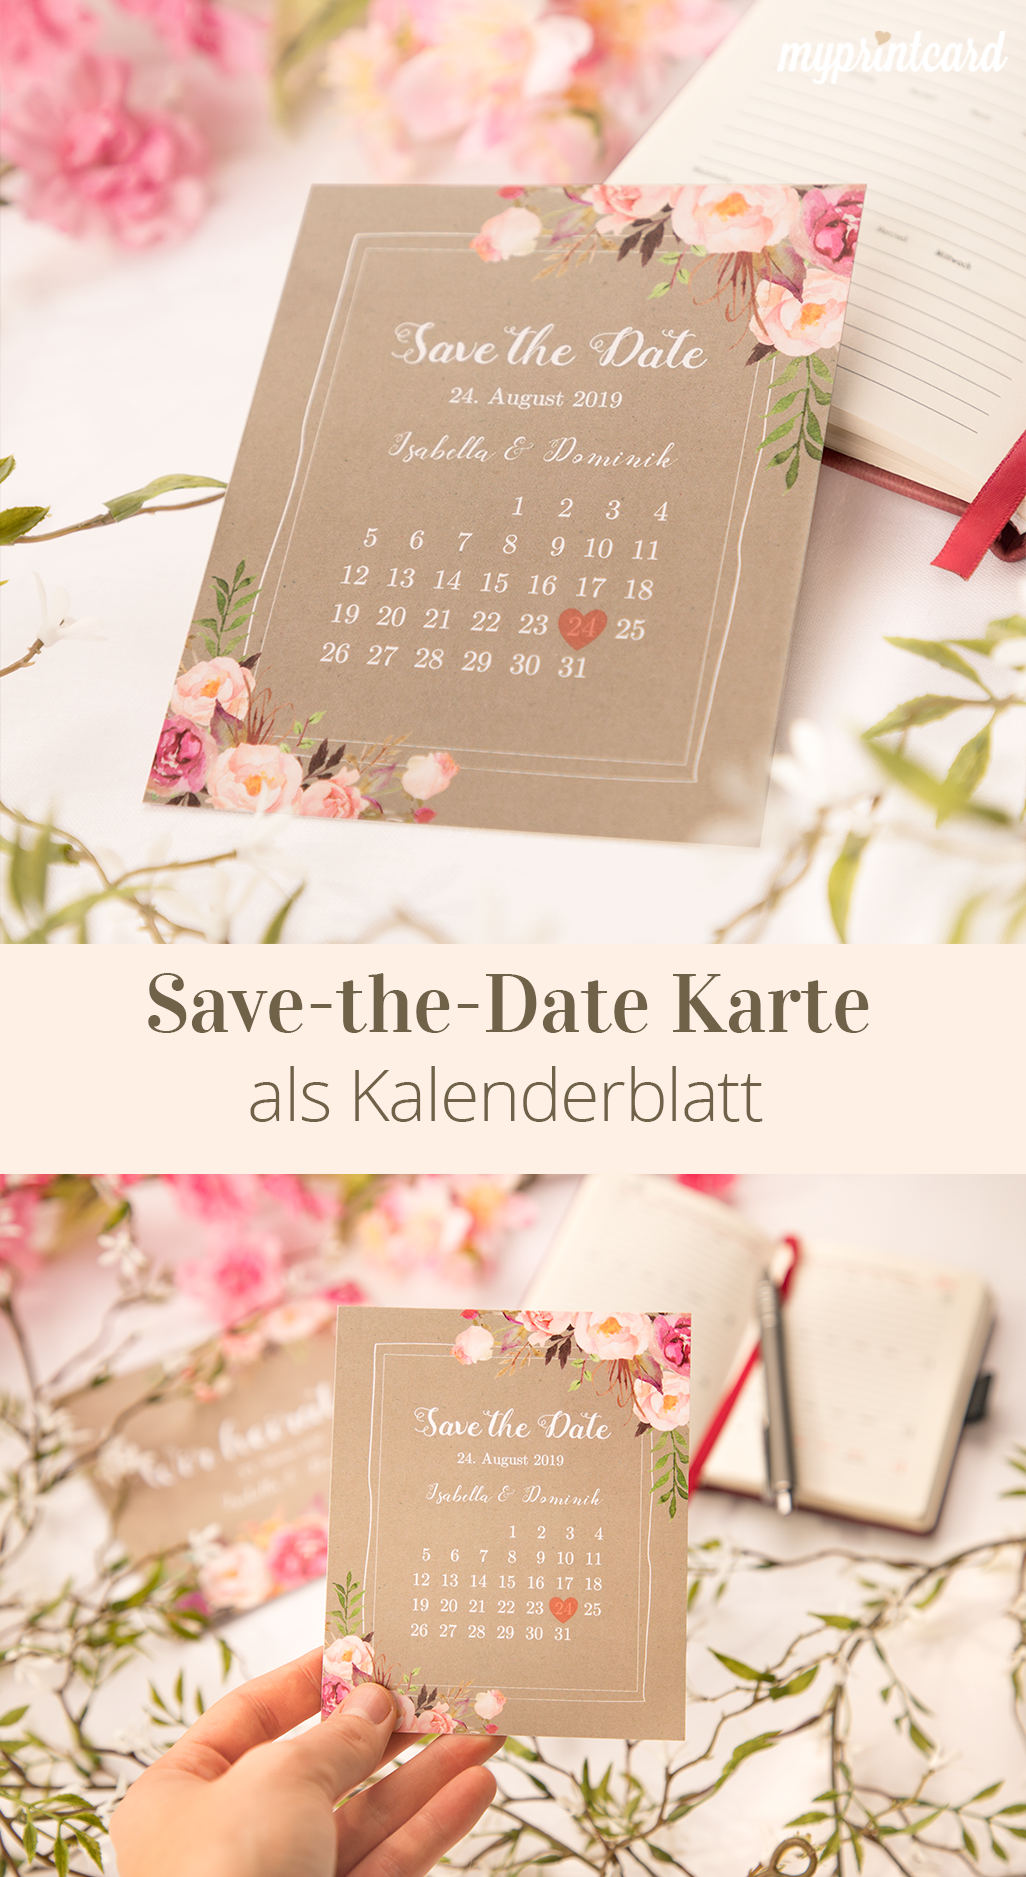 Die Save the Date Karte als Kalenderblatt